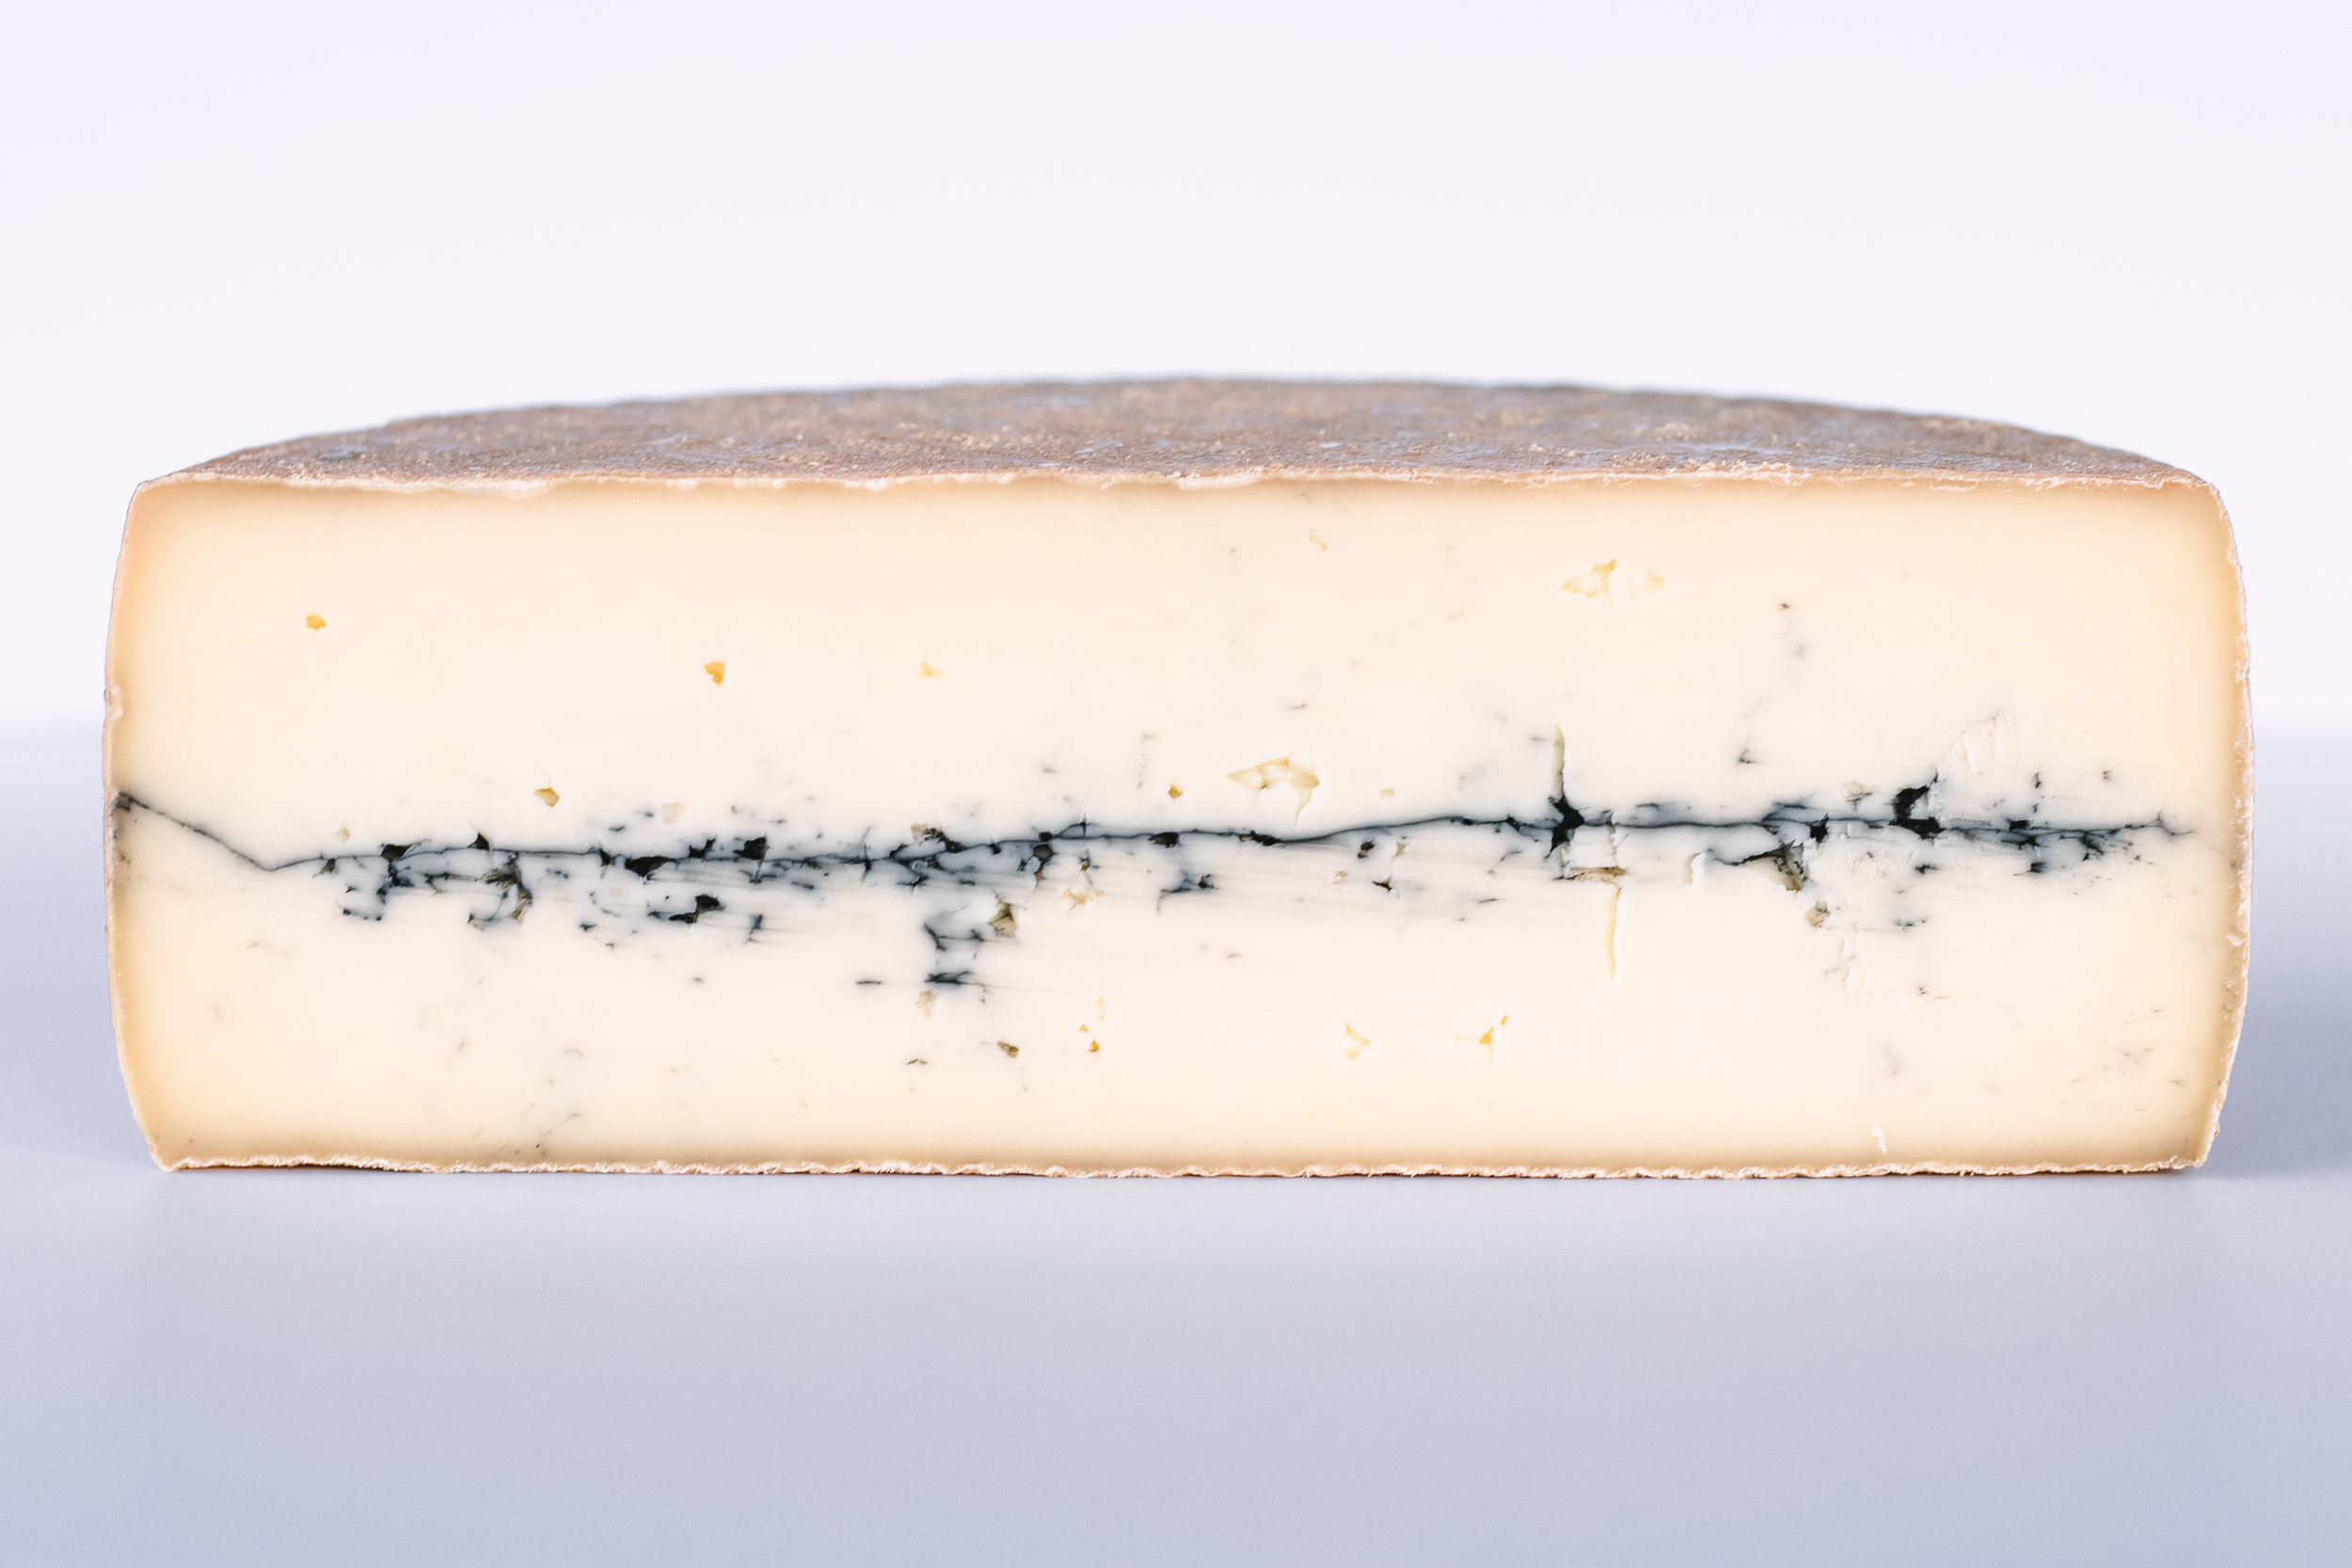 Coppinger - Raw Milk/Aged 90 Days (more info)